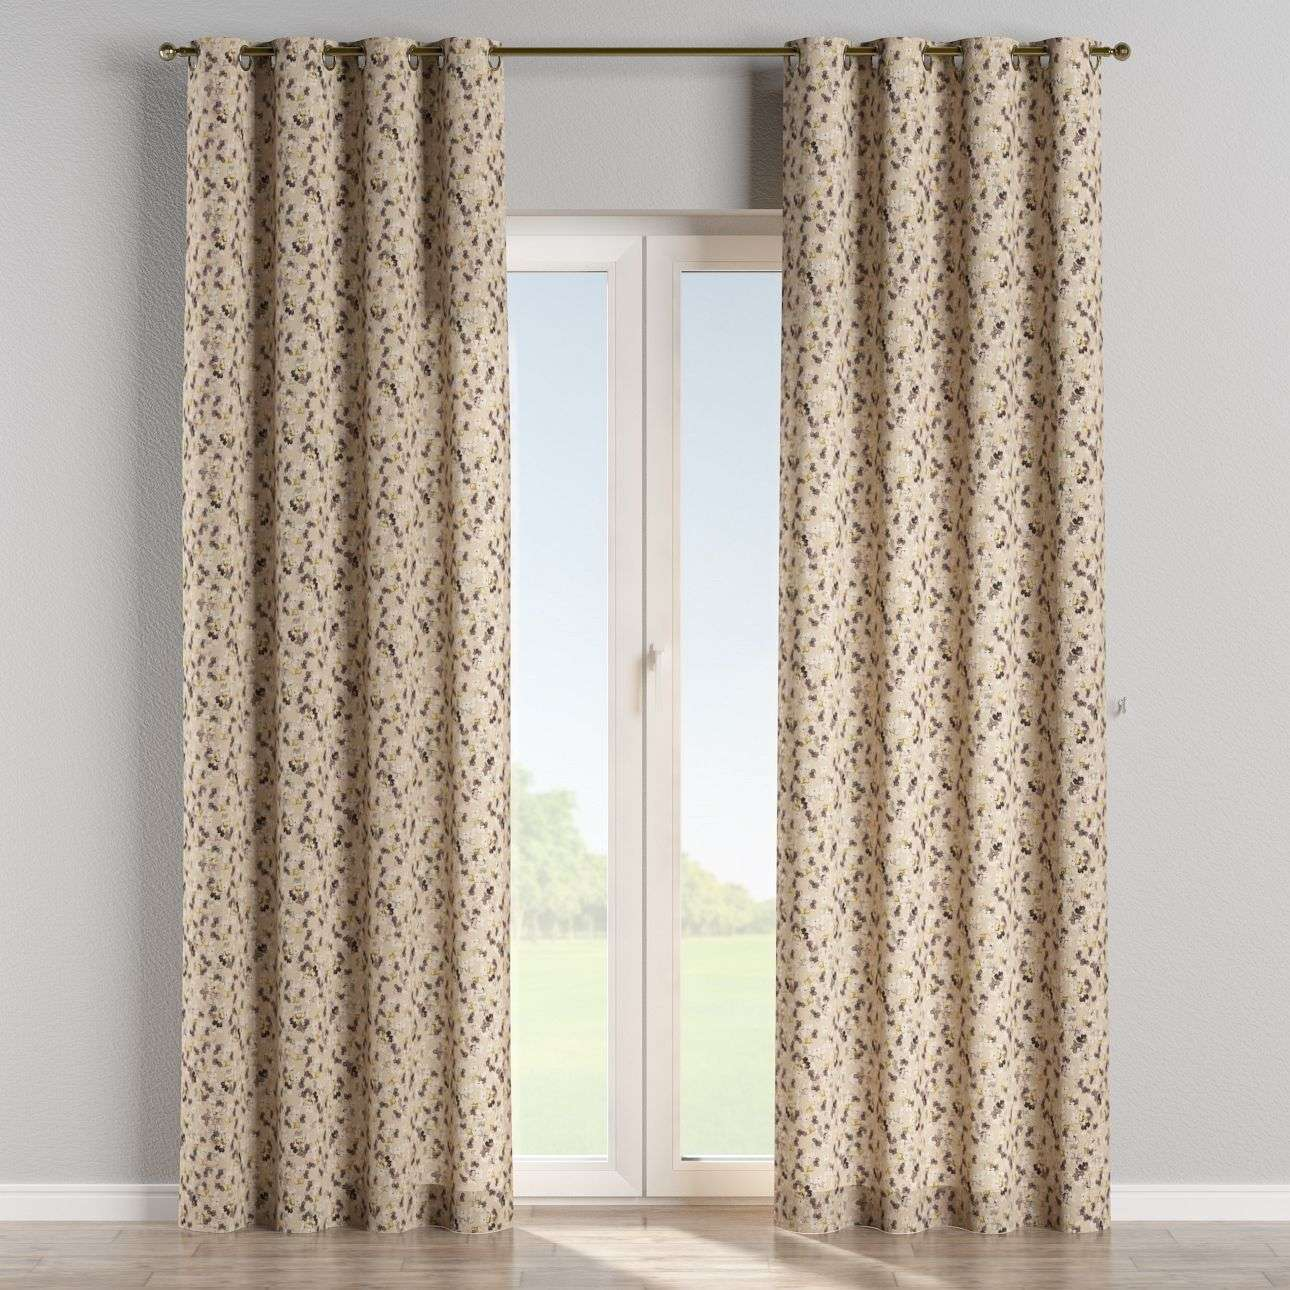 Eyelet curtains 130 x 260 cm (51 x 102 inch) in collection Londres, fabric: 140-48